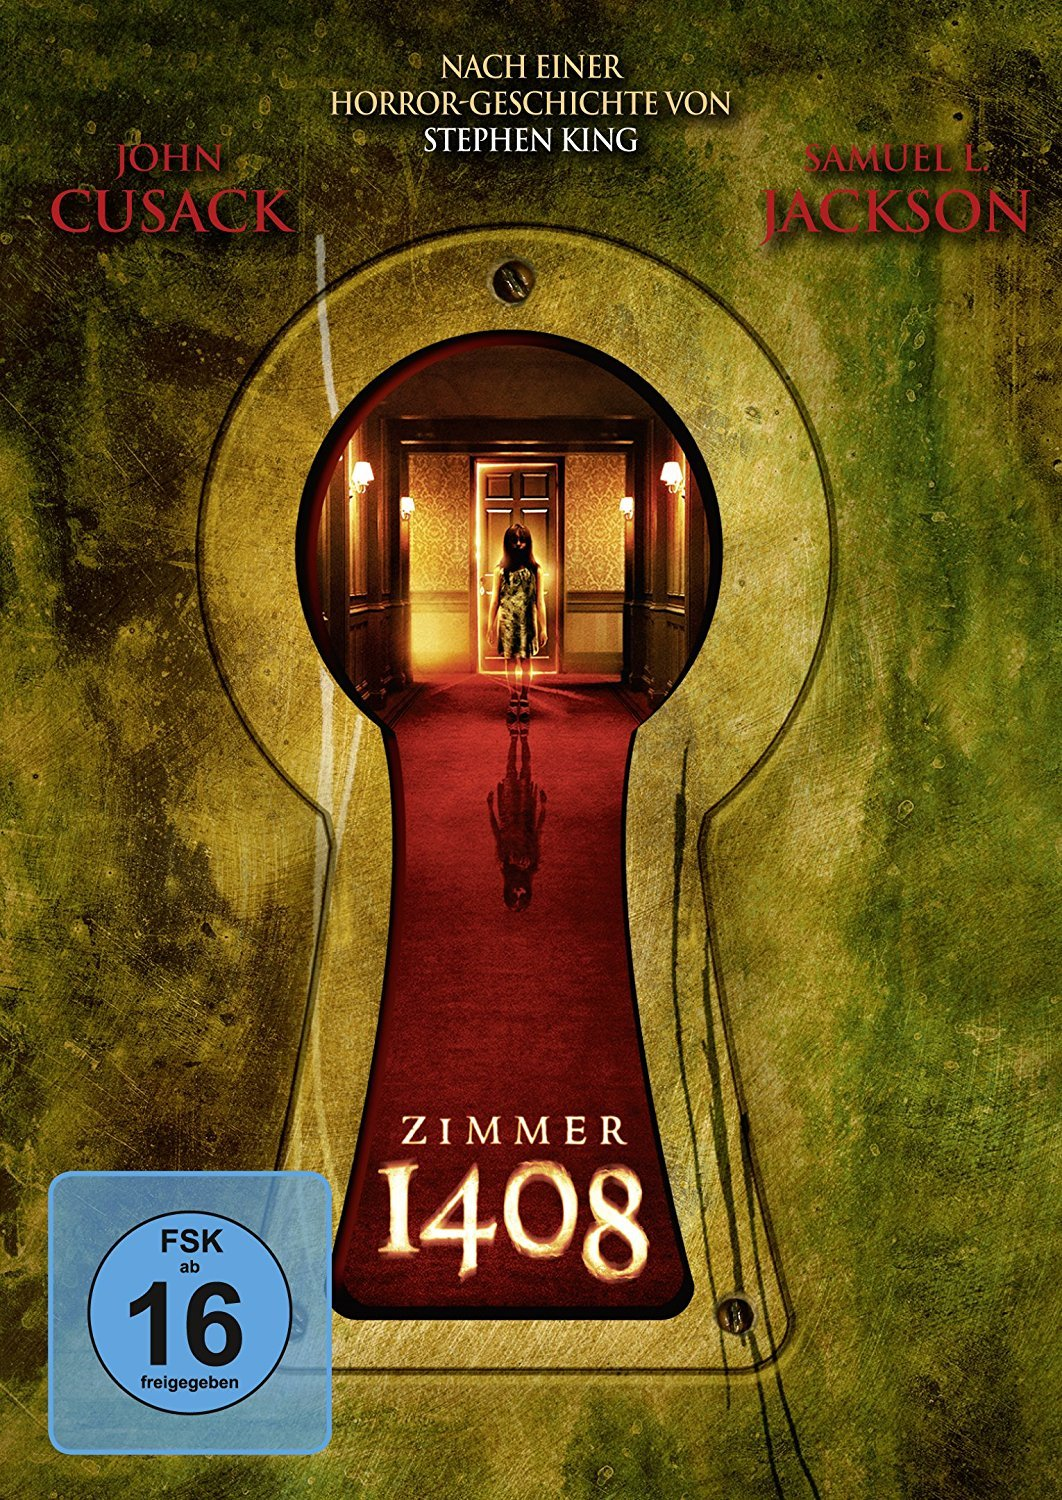 Filmkritik zimmer 1408 trailer horrorfilme for Stephen king habitacion 1408